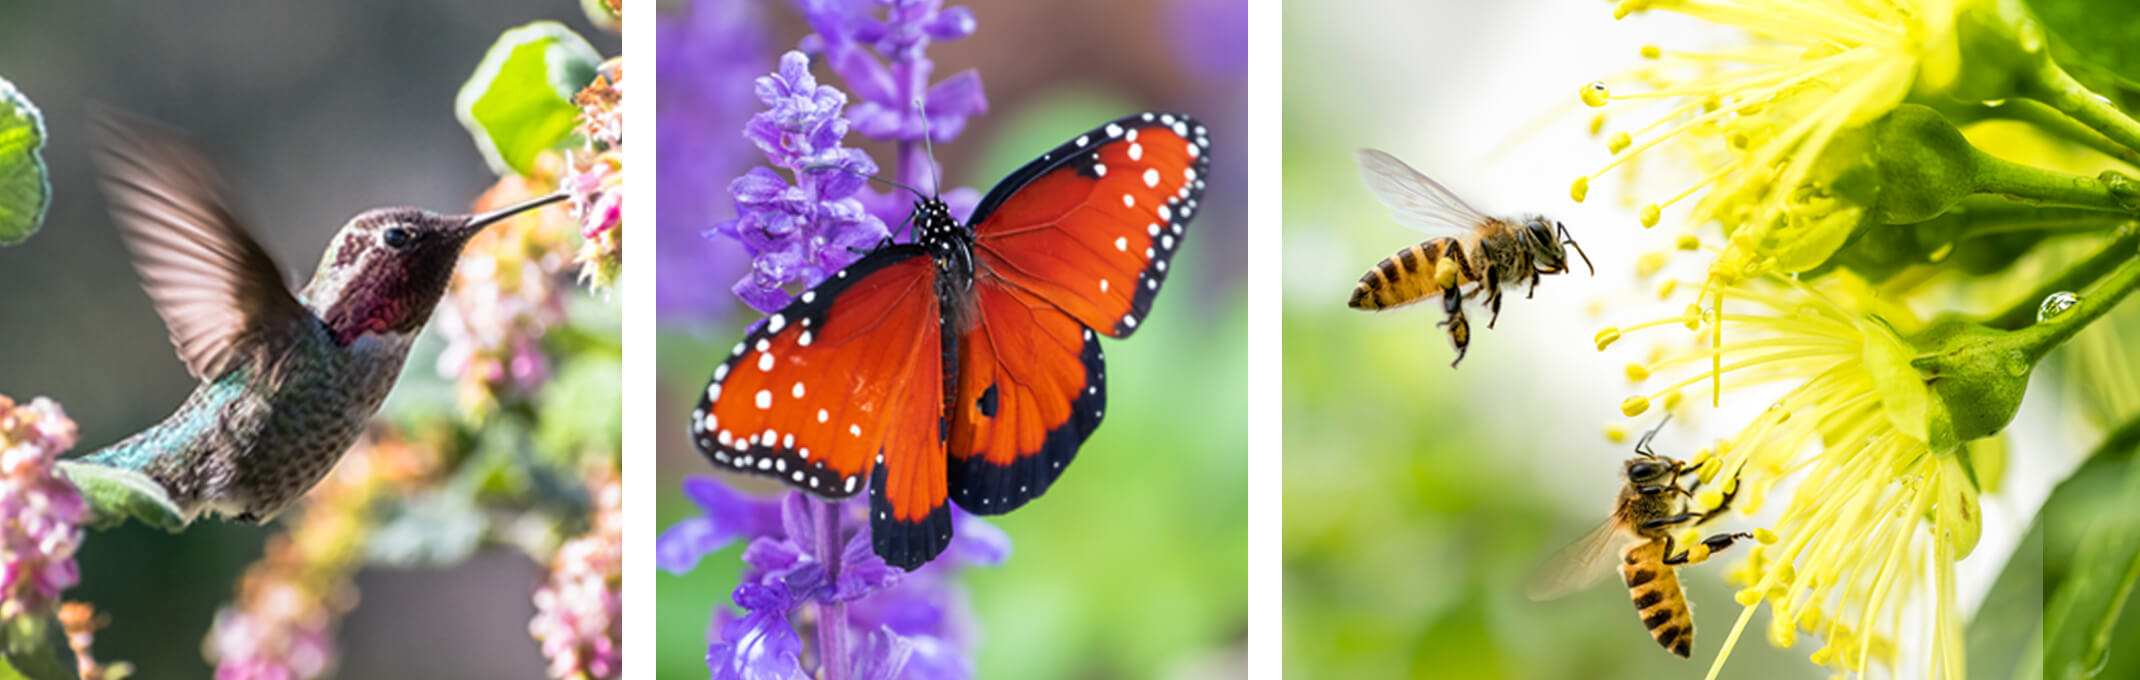 3 images of pollinators - the first is a hummingbird, the second a butterfly on lavender and the third is 2 bees extracting pollen from a yellow flower